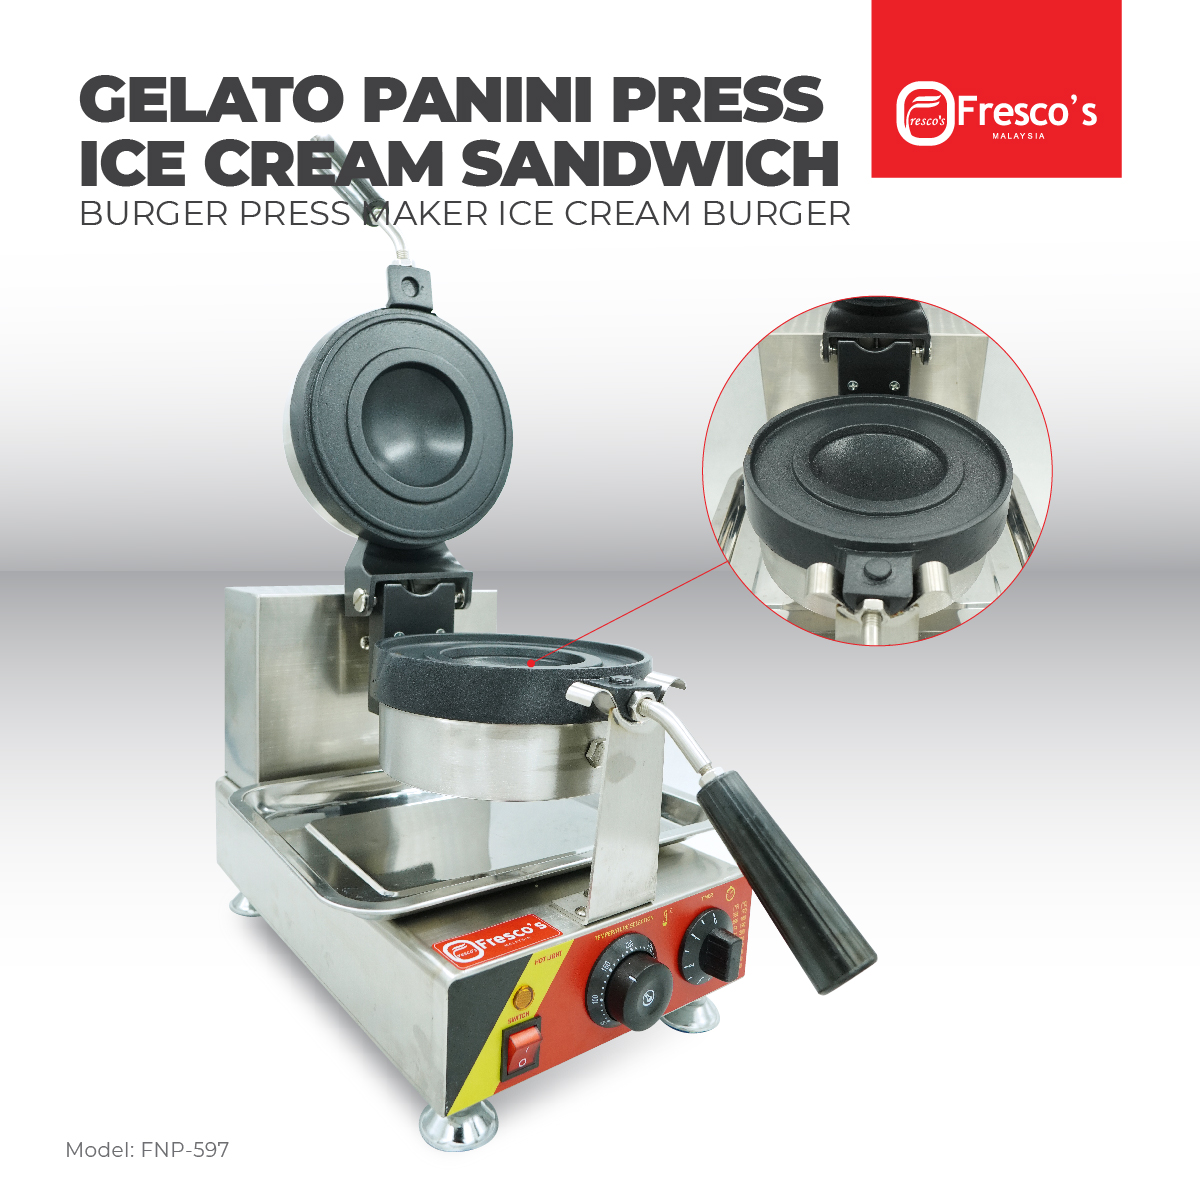 Fresco Gelato Panini Press Ice Cream Sandwich Machine